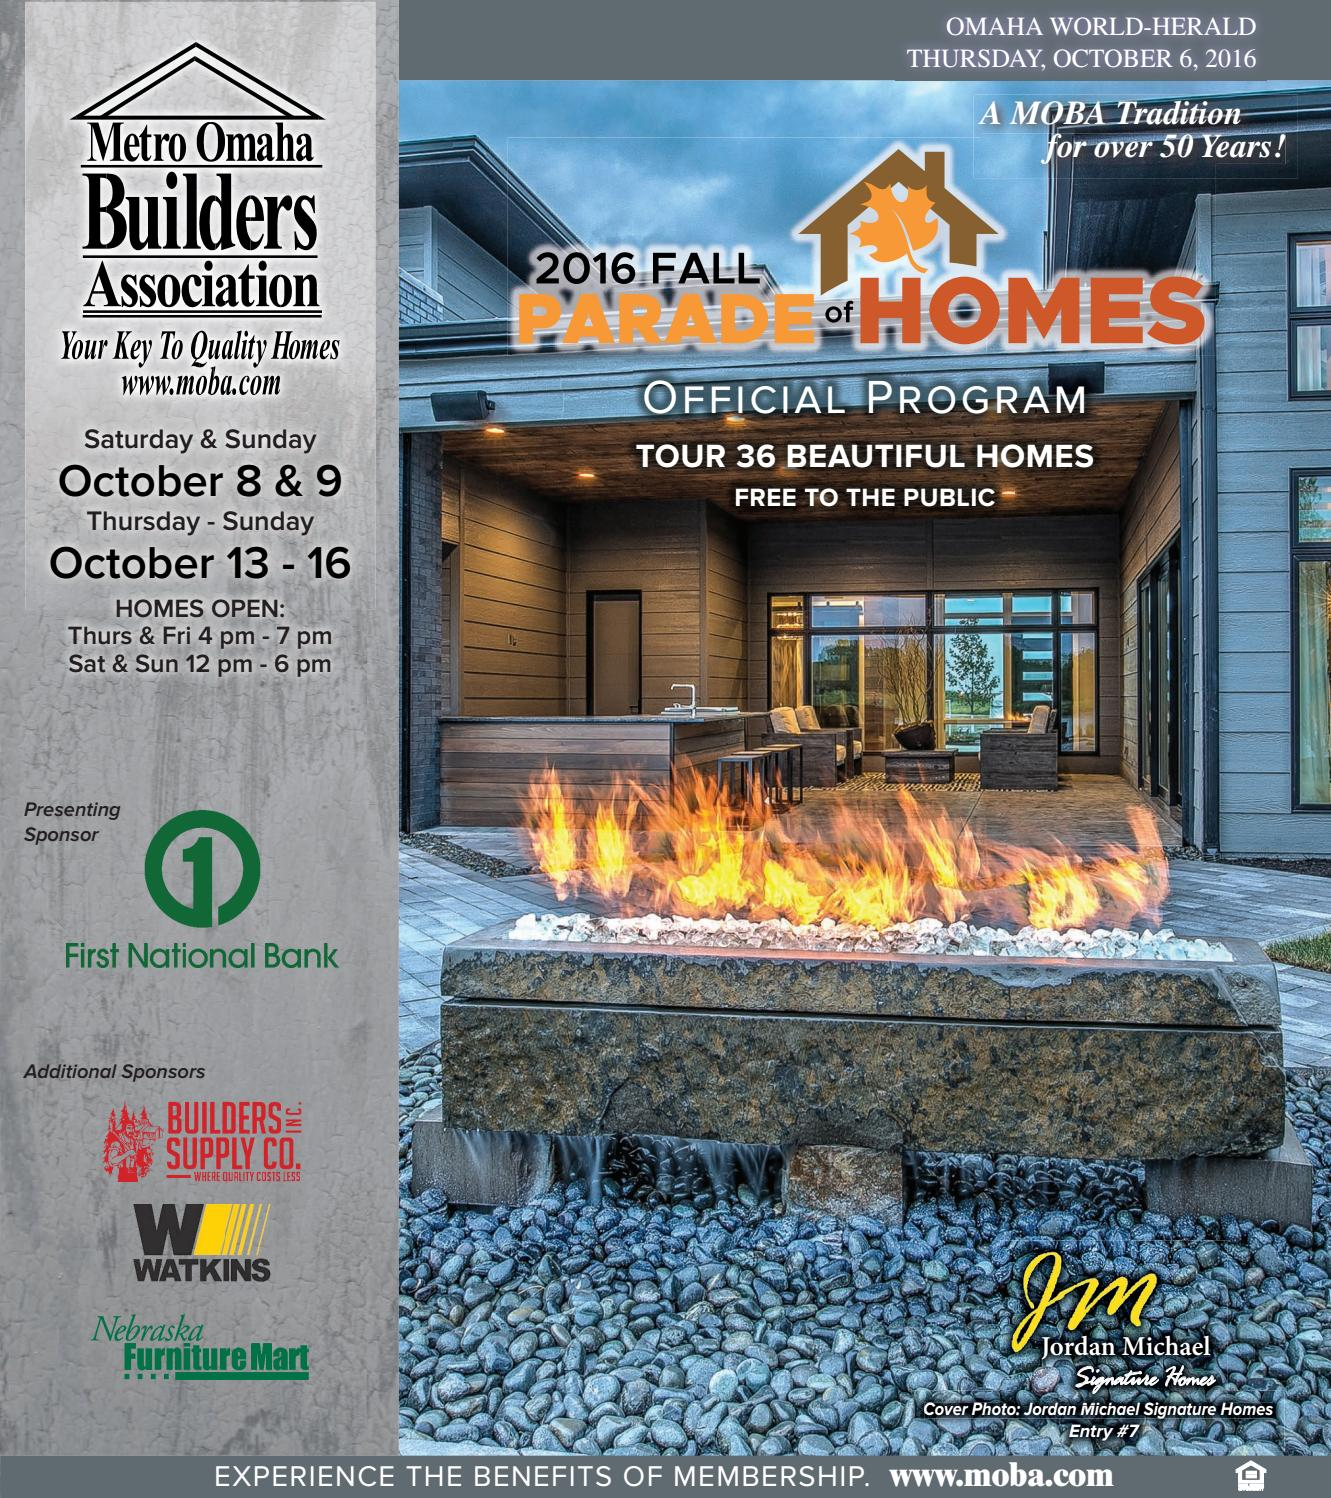 2016 fall parade of homes by omaha world herald issuu